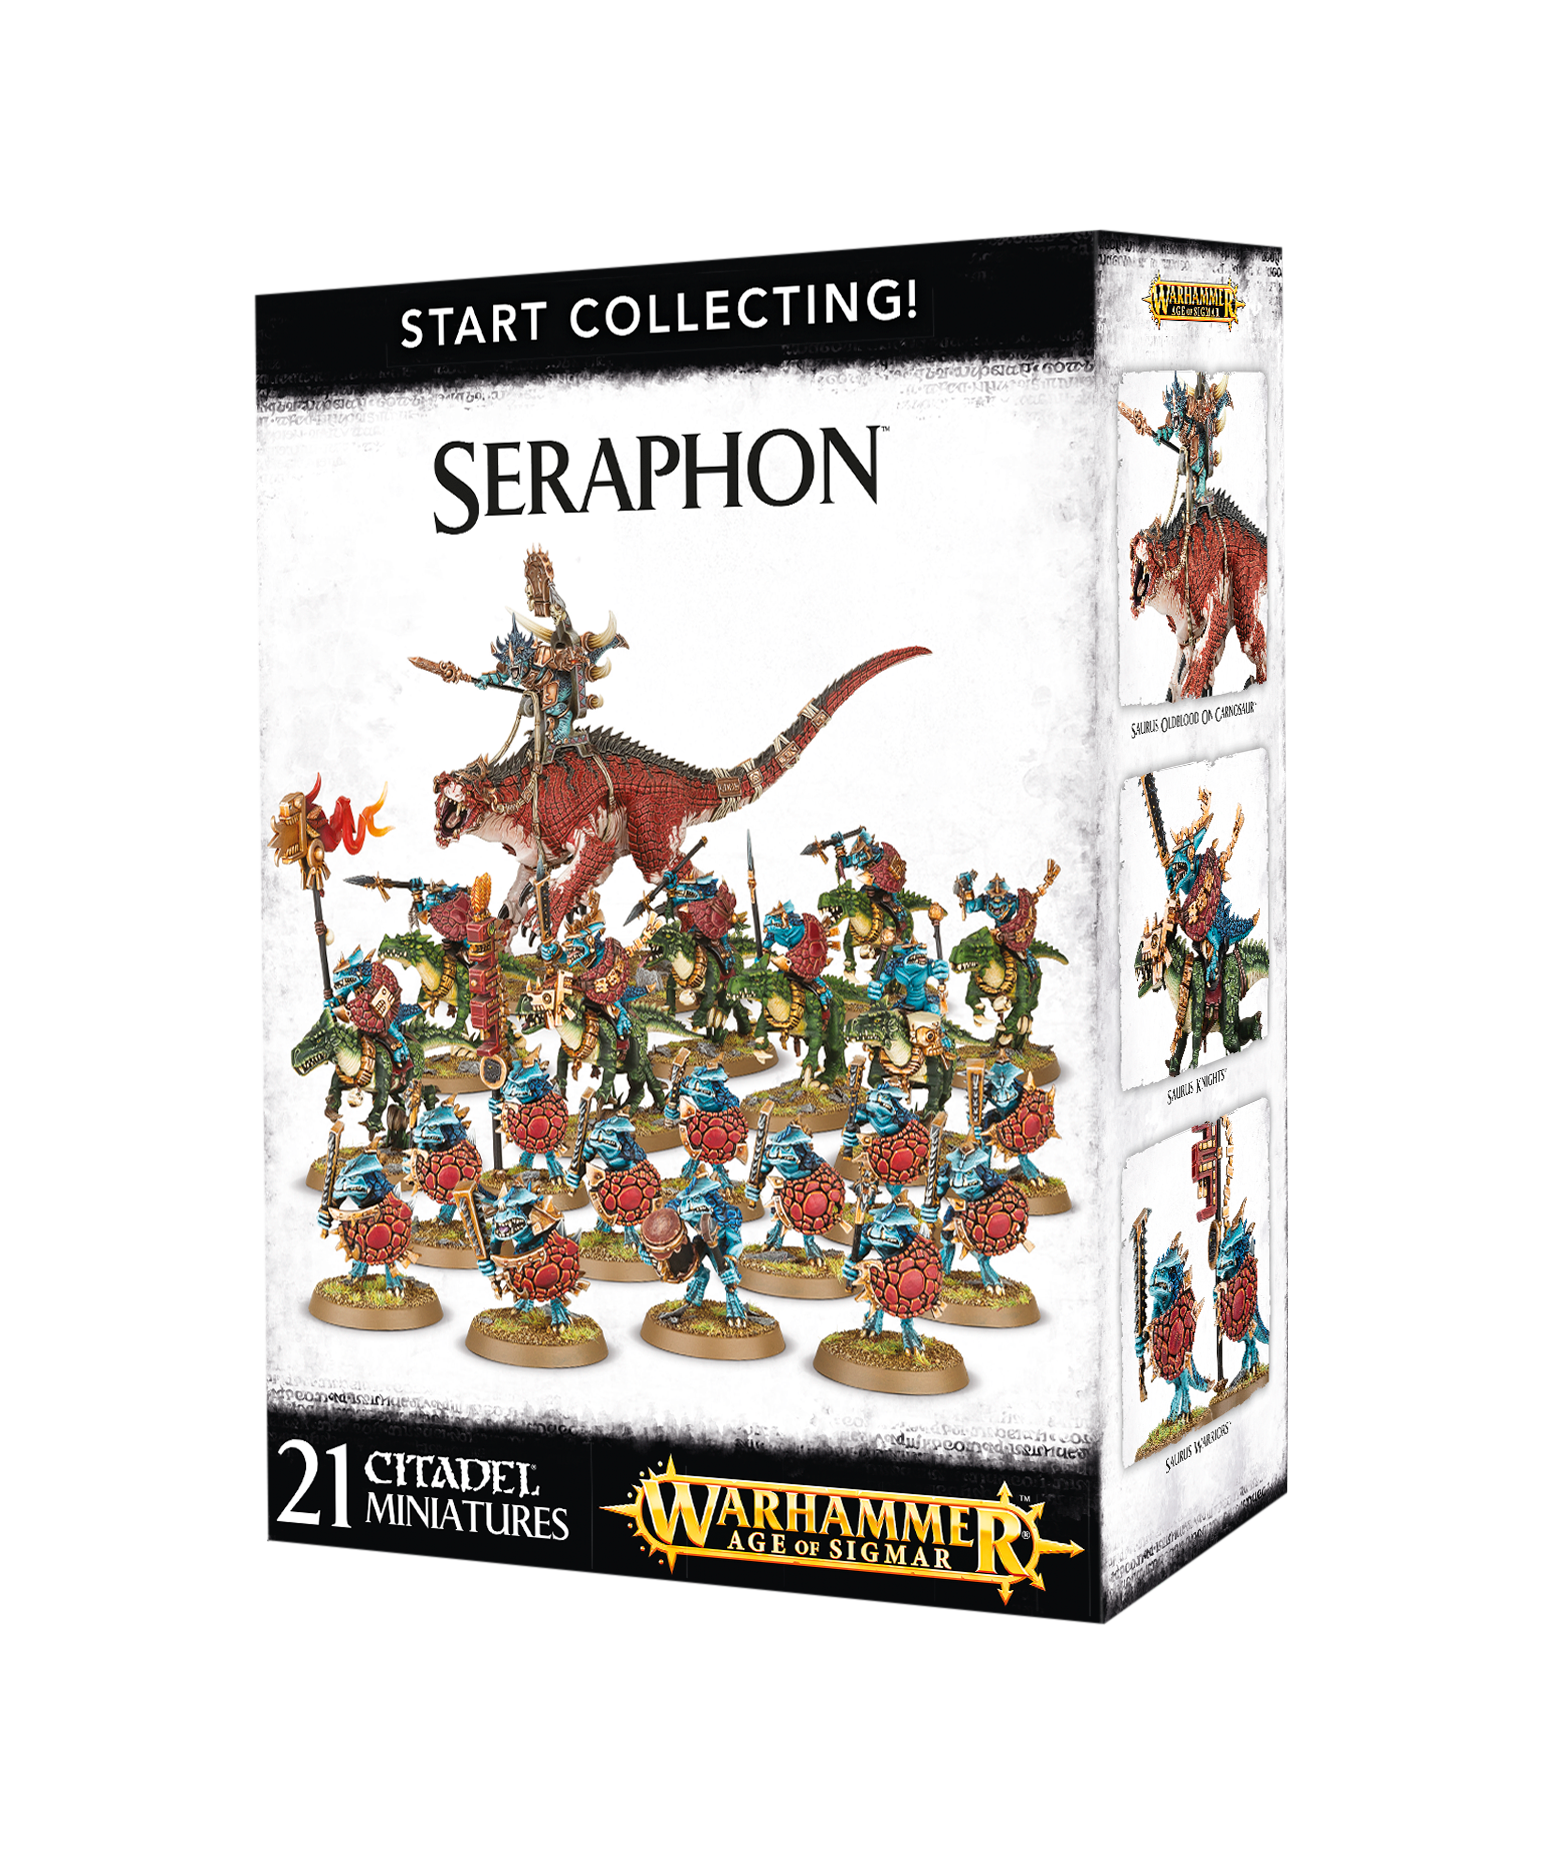 Seraphon, Age of Sigmar, Start Collecting